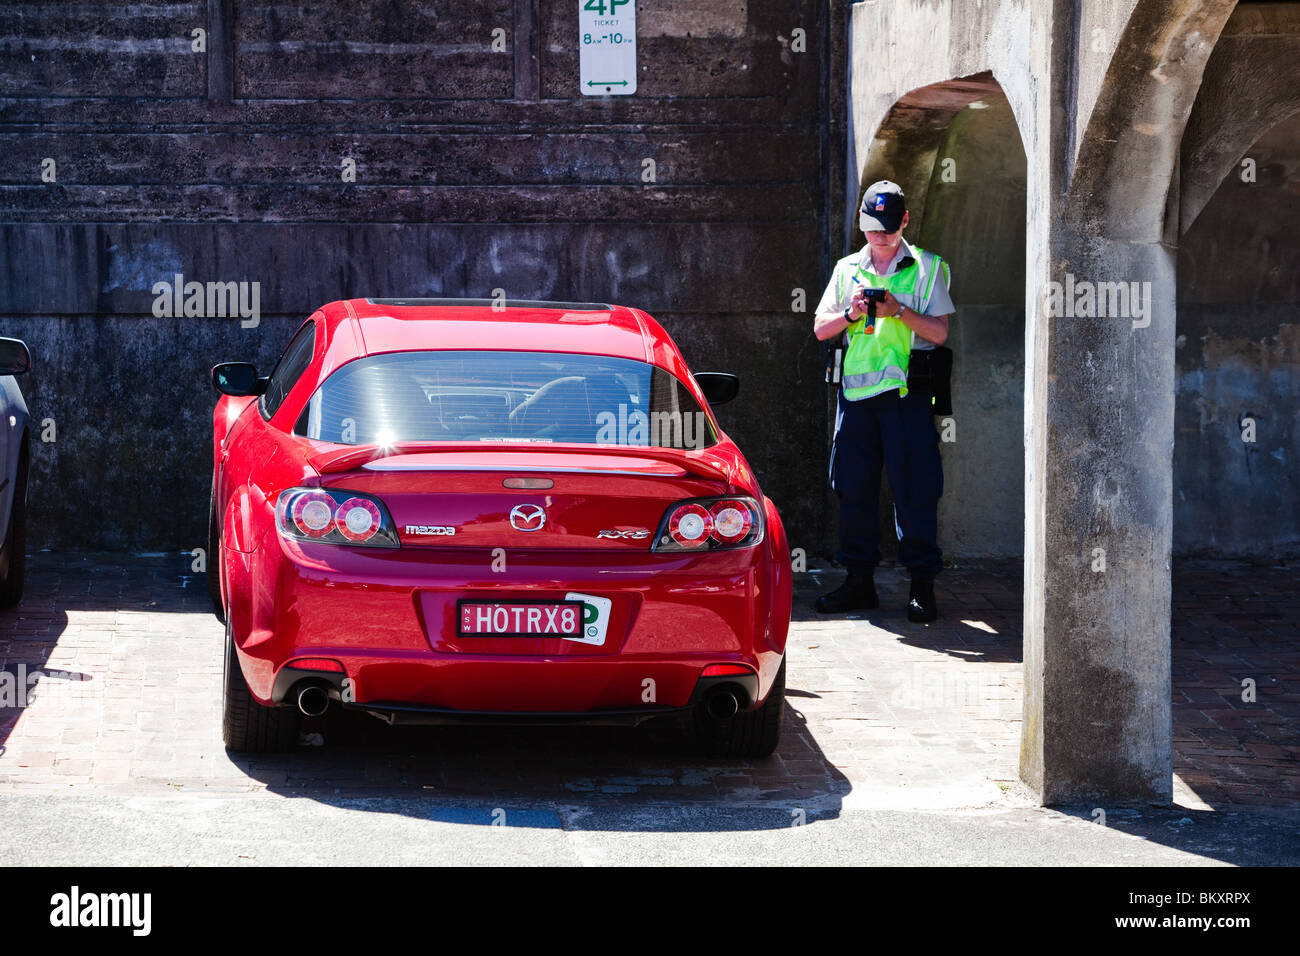 Mazda RX8 being booked for overstaying parking - Stock Image